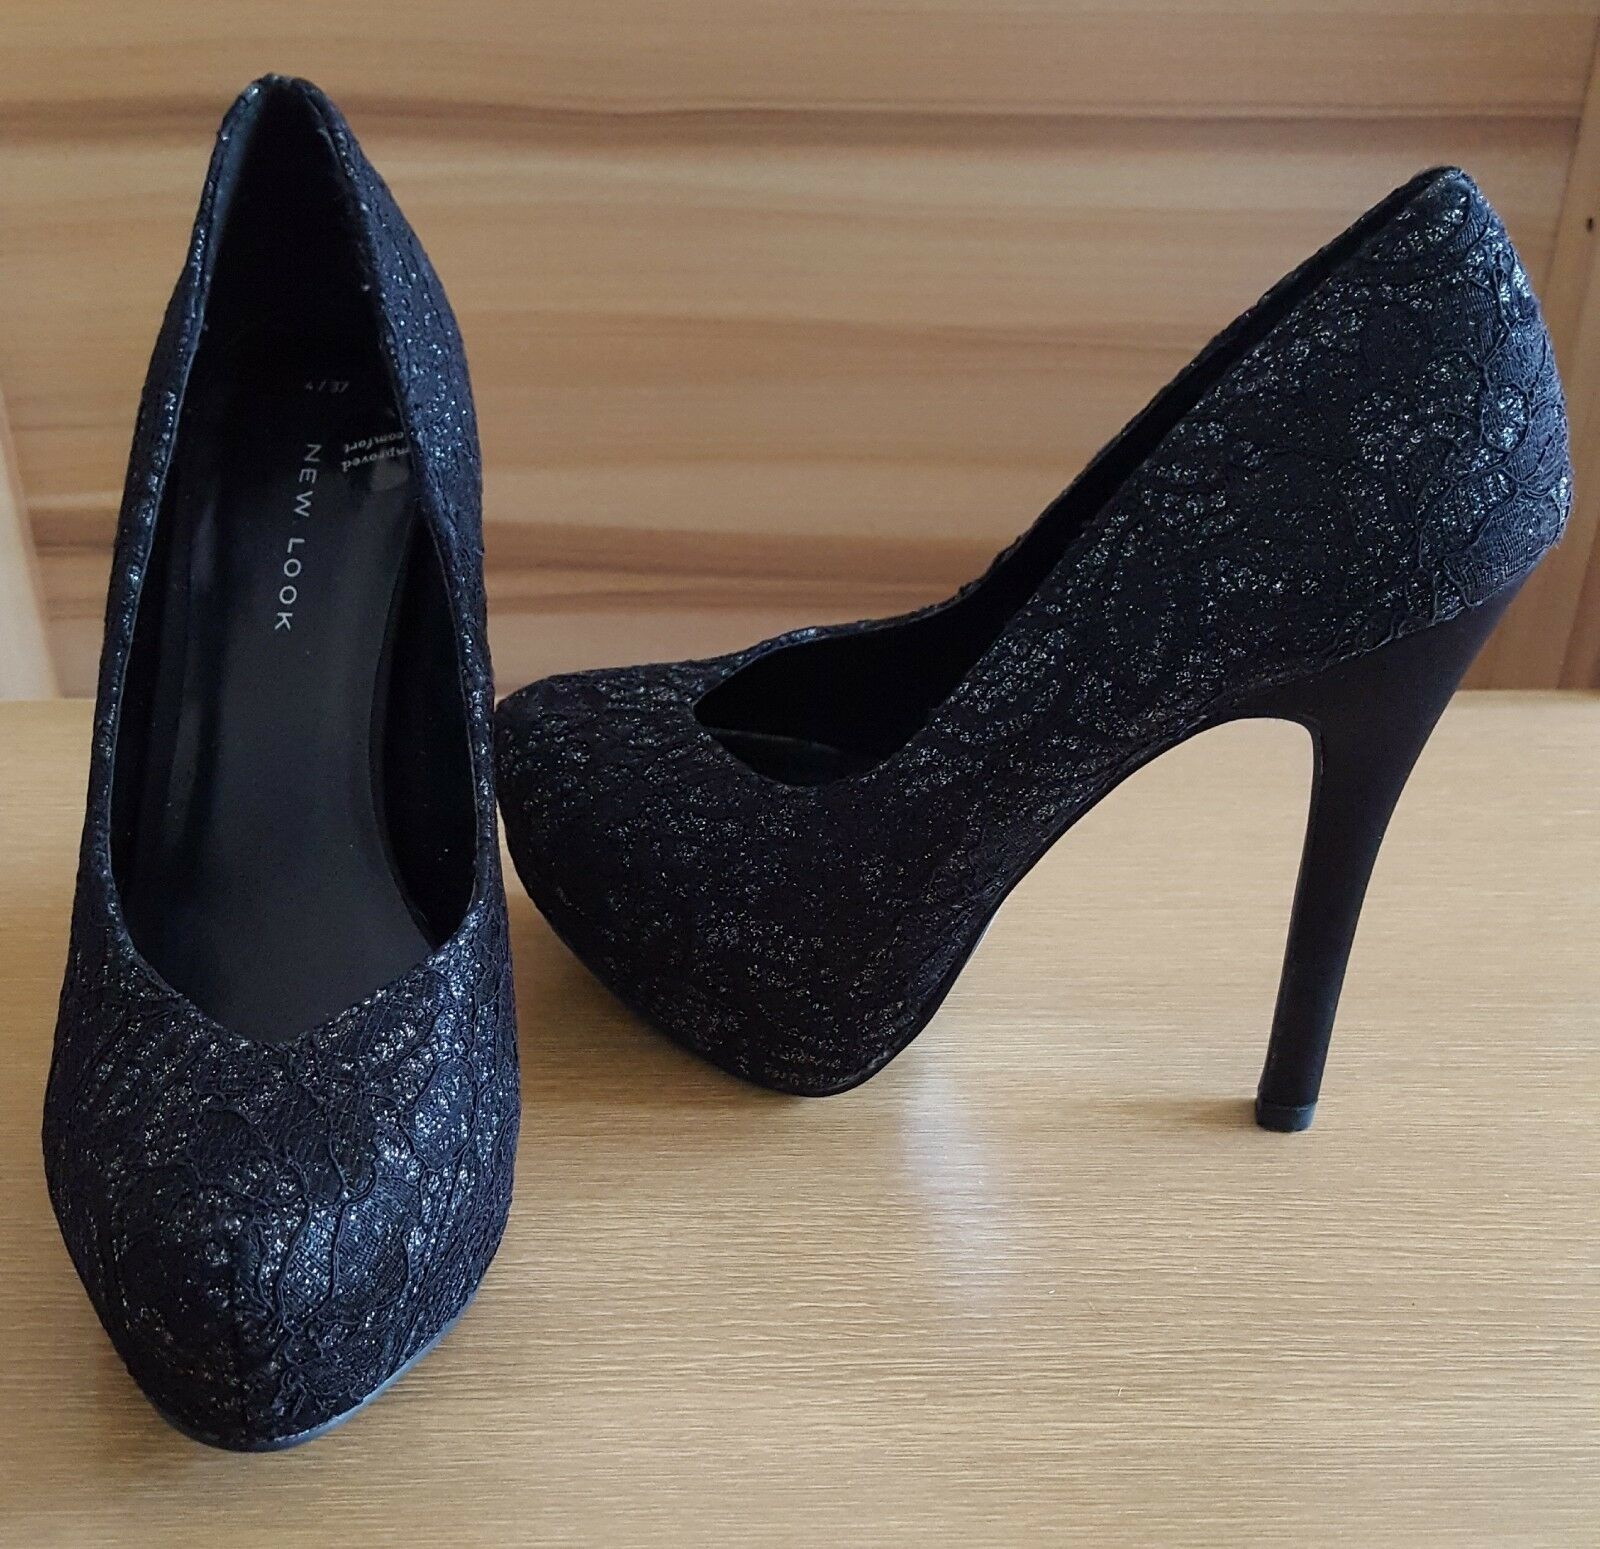 NEW LOOK -  Gorgeous Black with a little silver sparkle Shoes Size 4